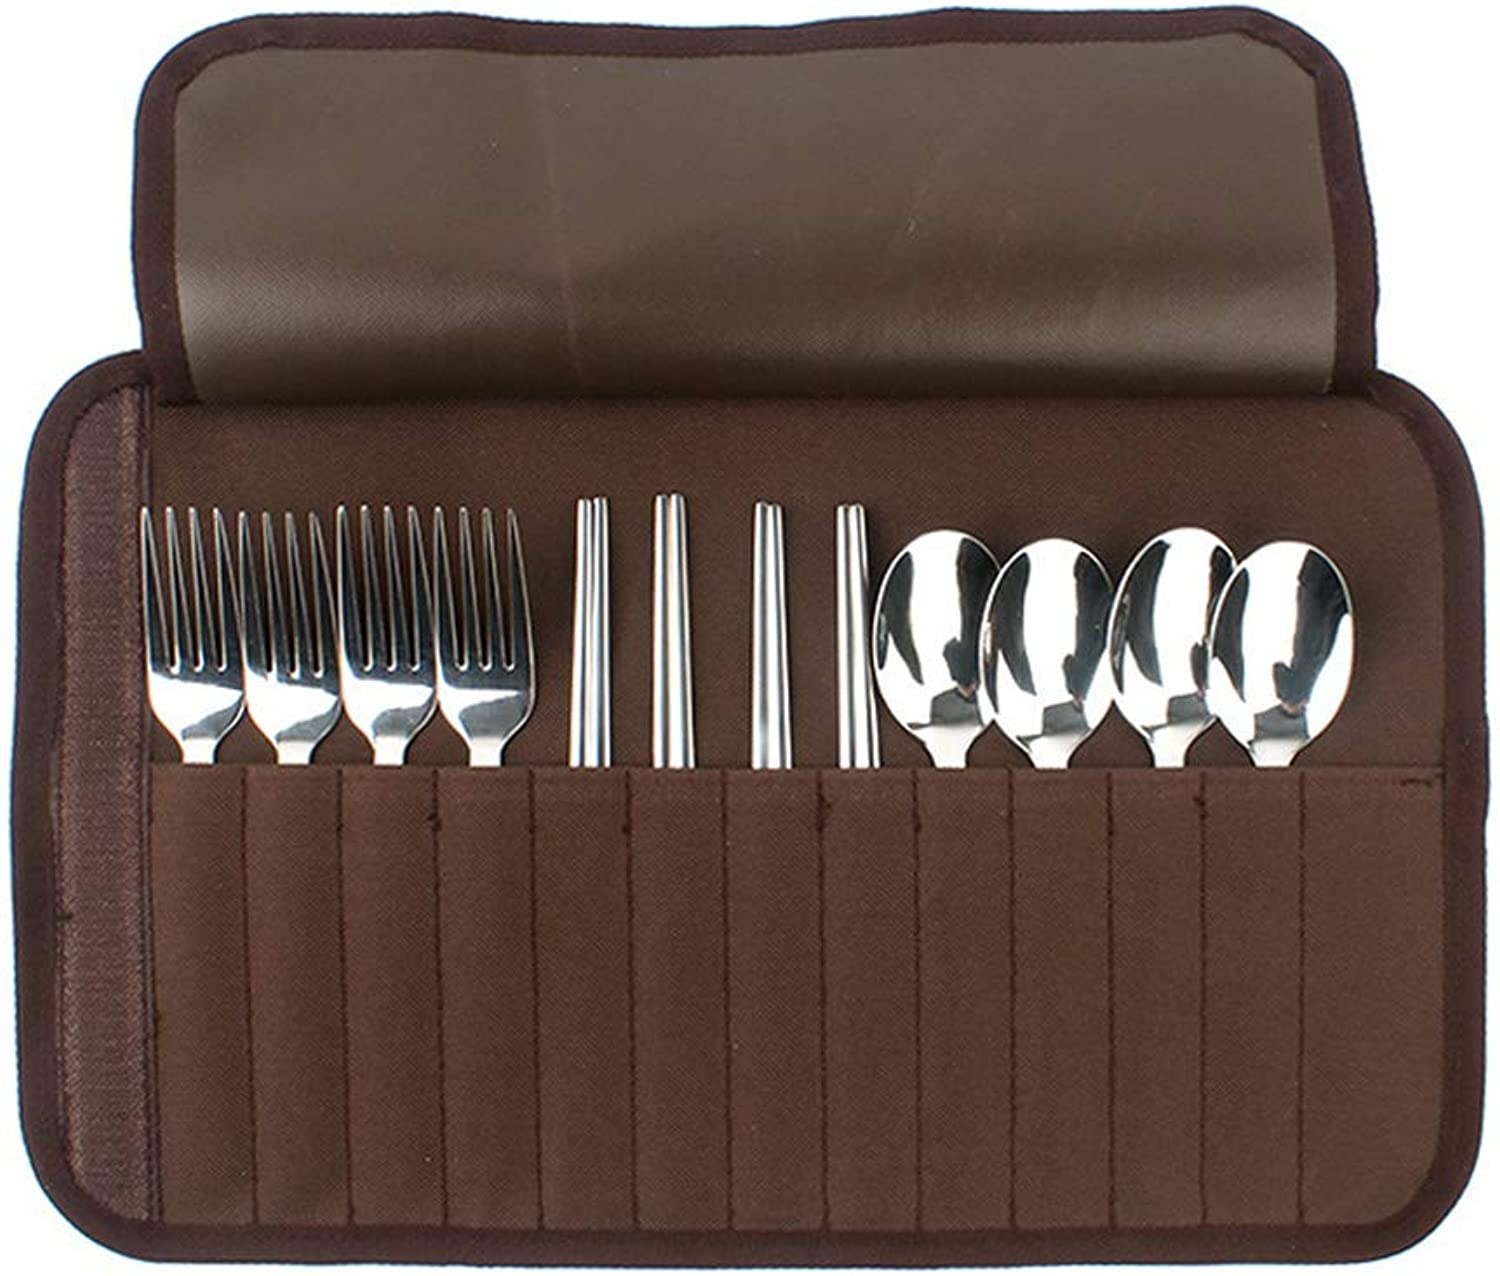 Grill Tool Set,Outdoor Cutlery Set,Tableware,Stainless Steel Cutlery Camping Set Portable Outdoor Travel.